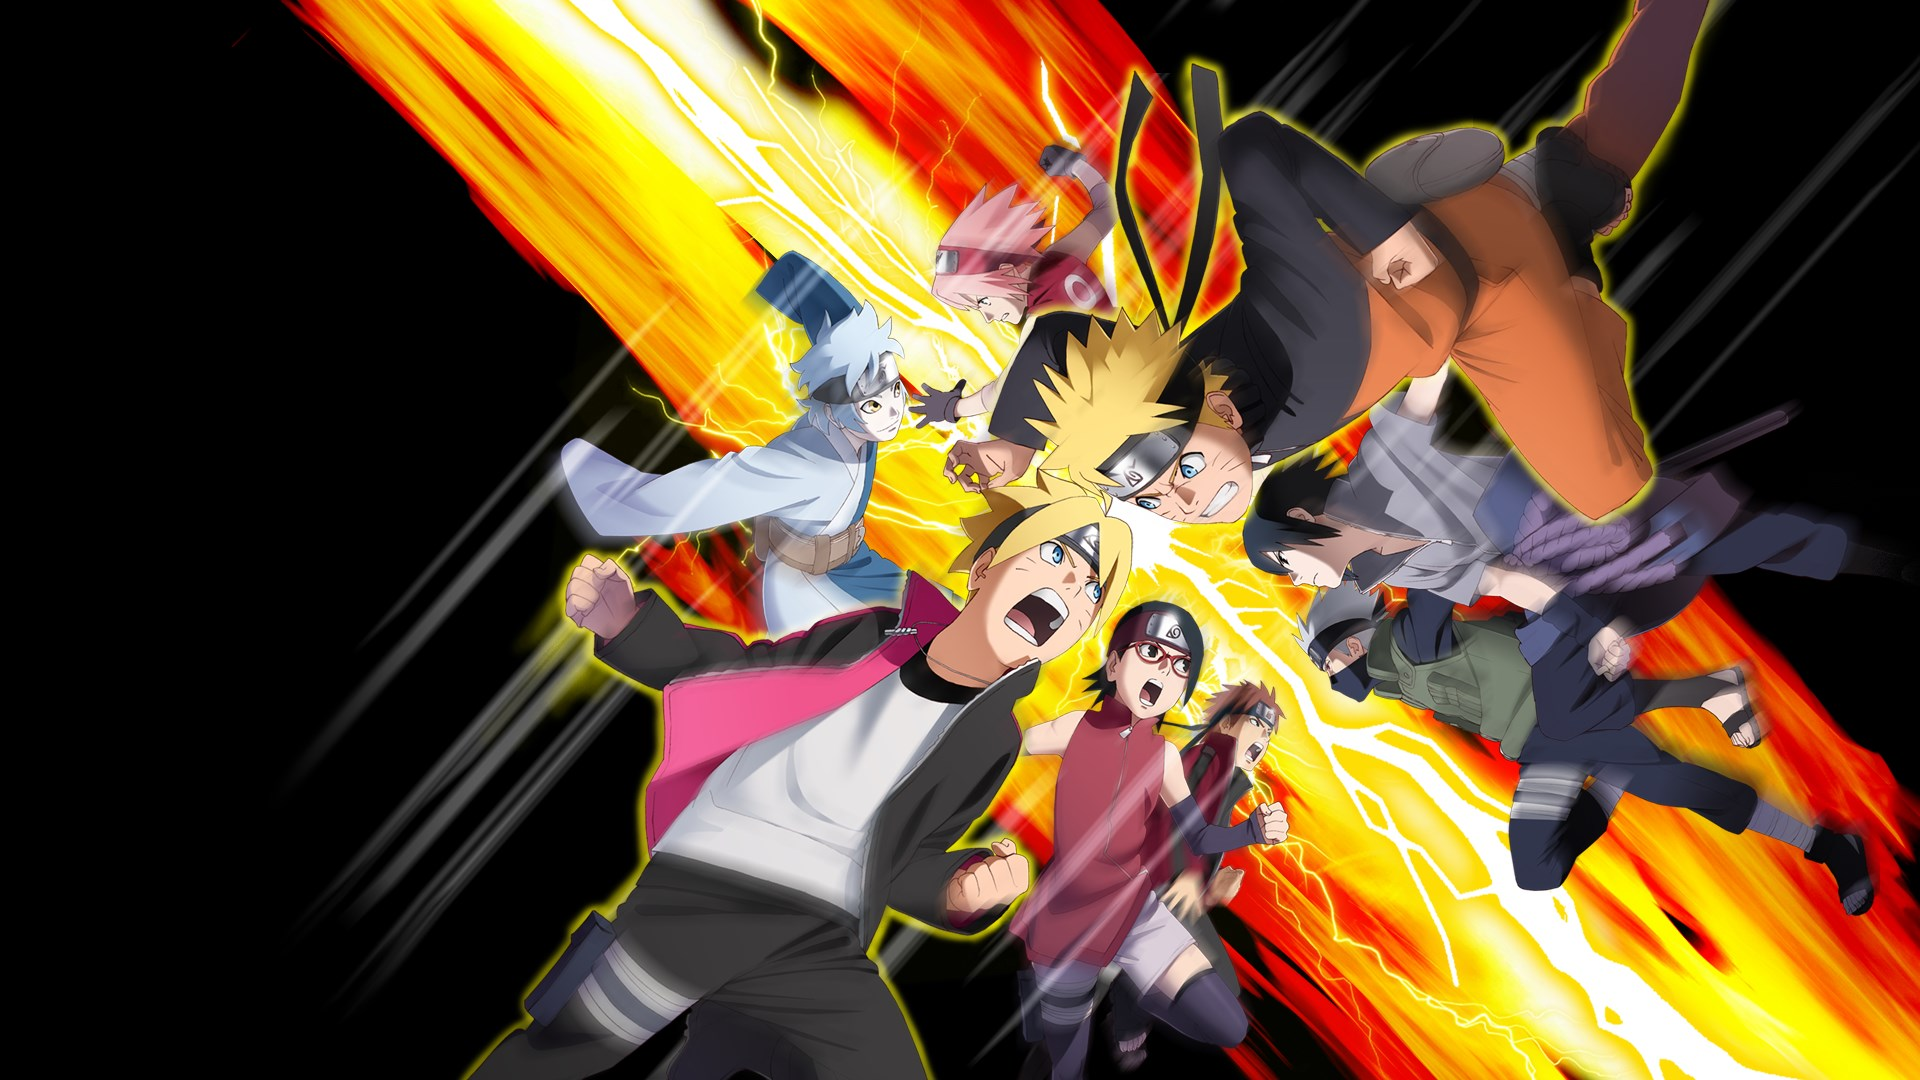 Buy NARUTO TO BORUTO: SHINOBI STRIKER - Microsoft Store